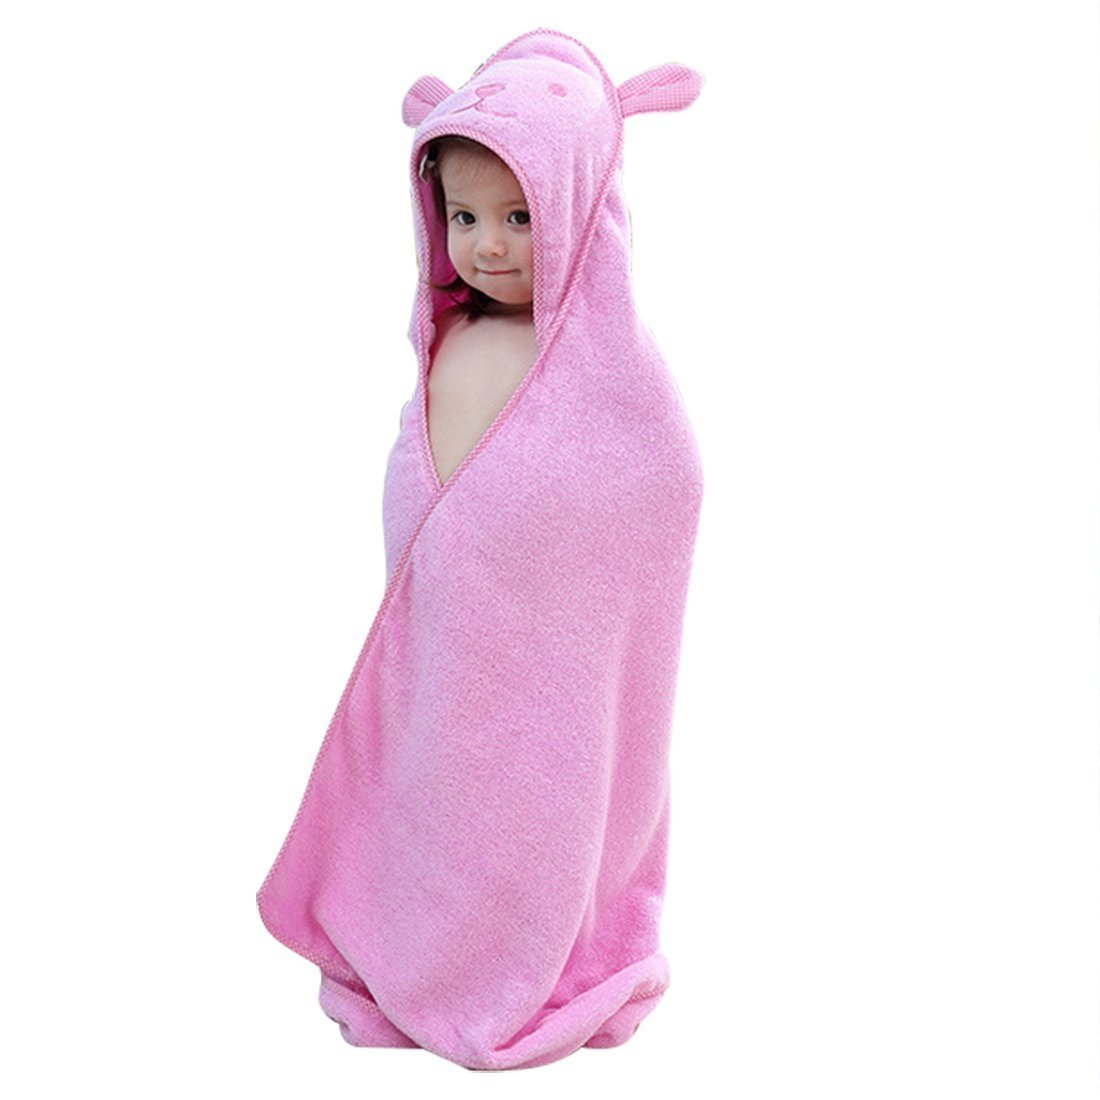 Baby Hooded Toddler Towel with Bear Ear- Soft and Thick 100% Cotton Bath Set for Kids Girls Boys Infant ad Toddler, Good Choice (Pink)